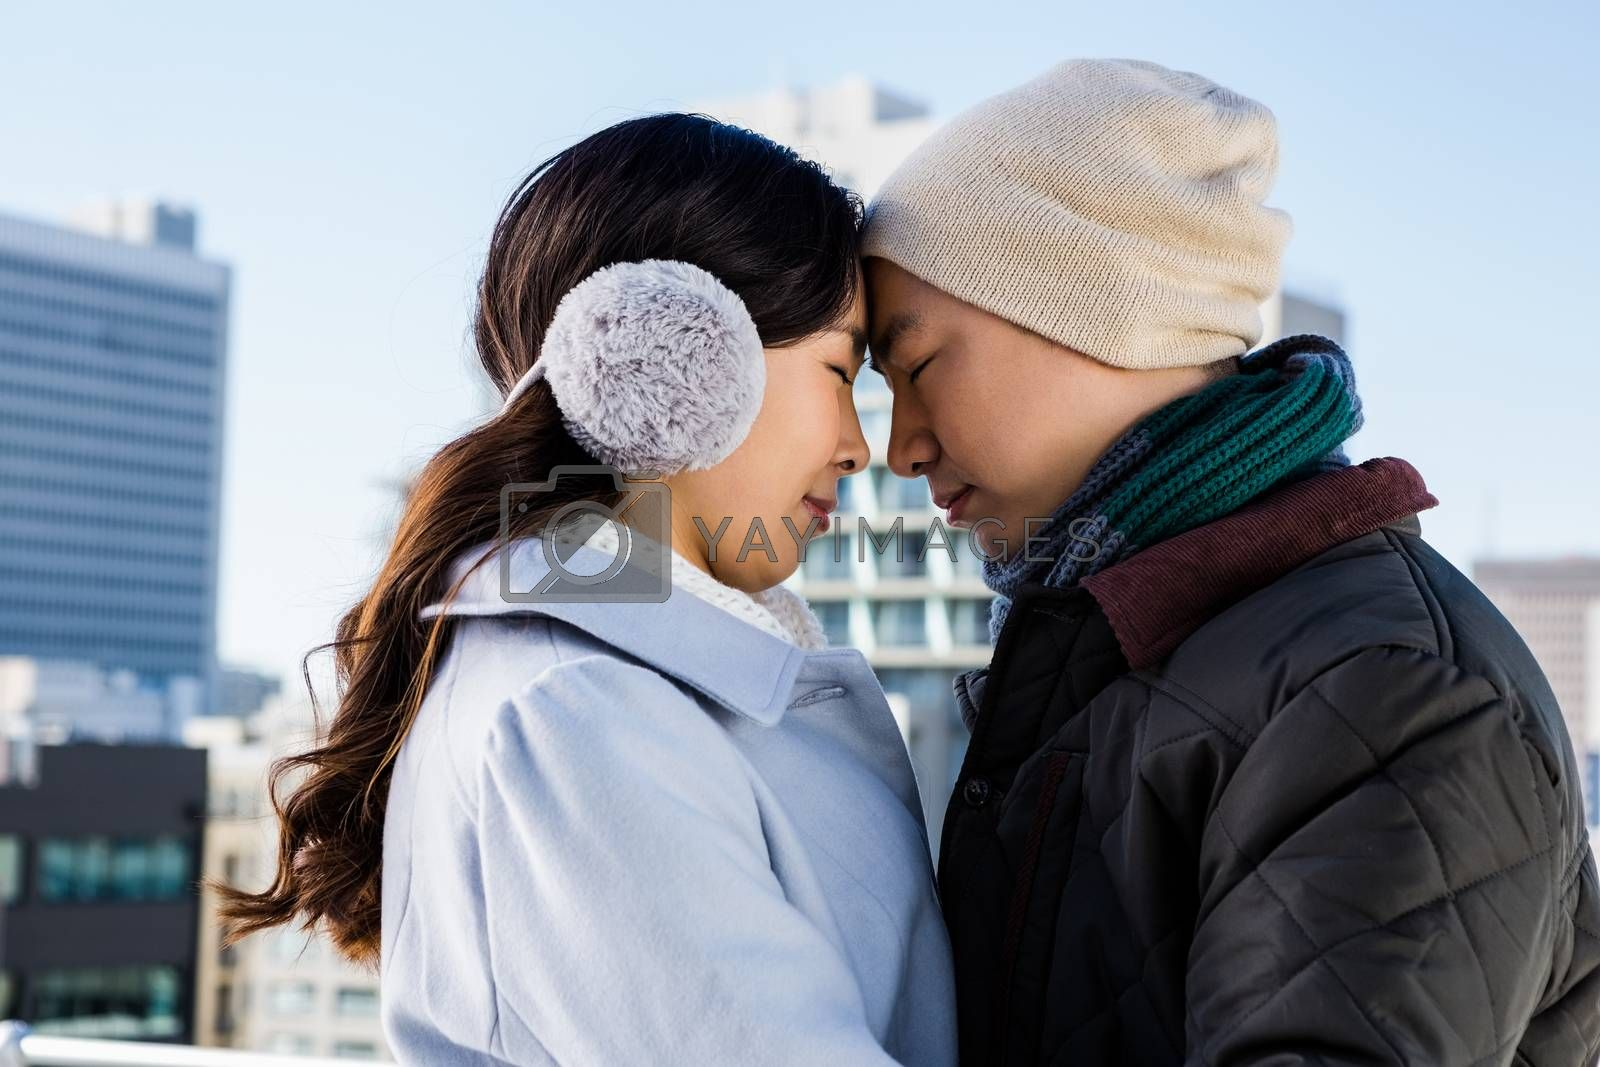 Affectionate couple in warm clothing head to head